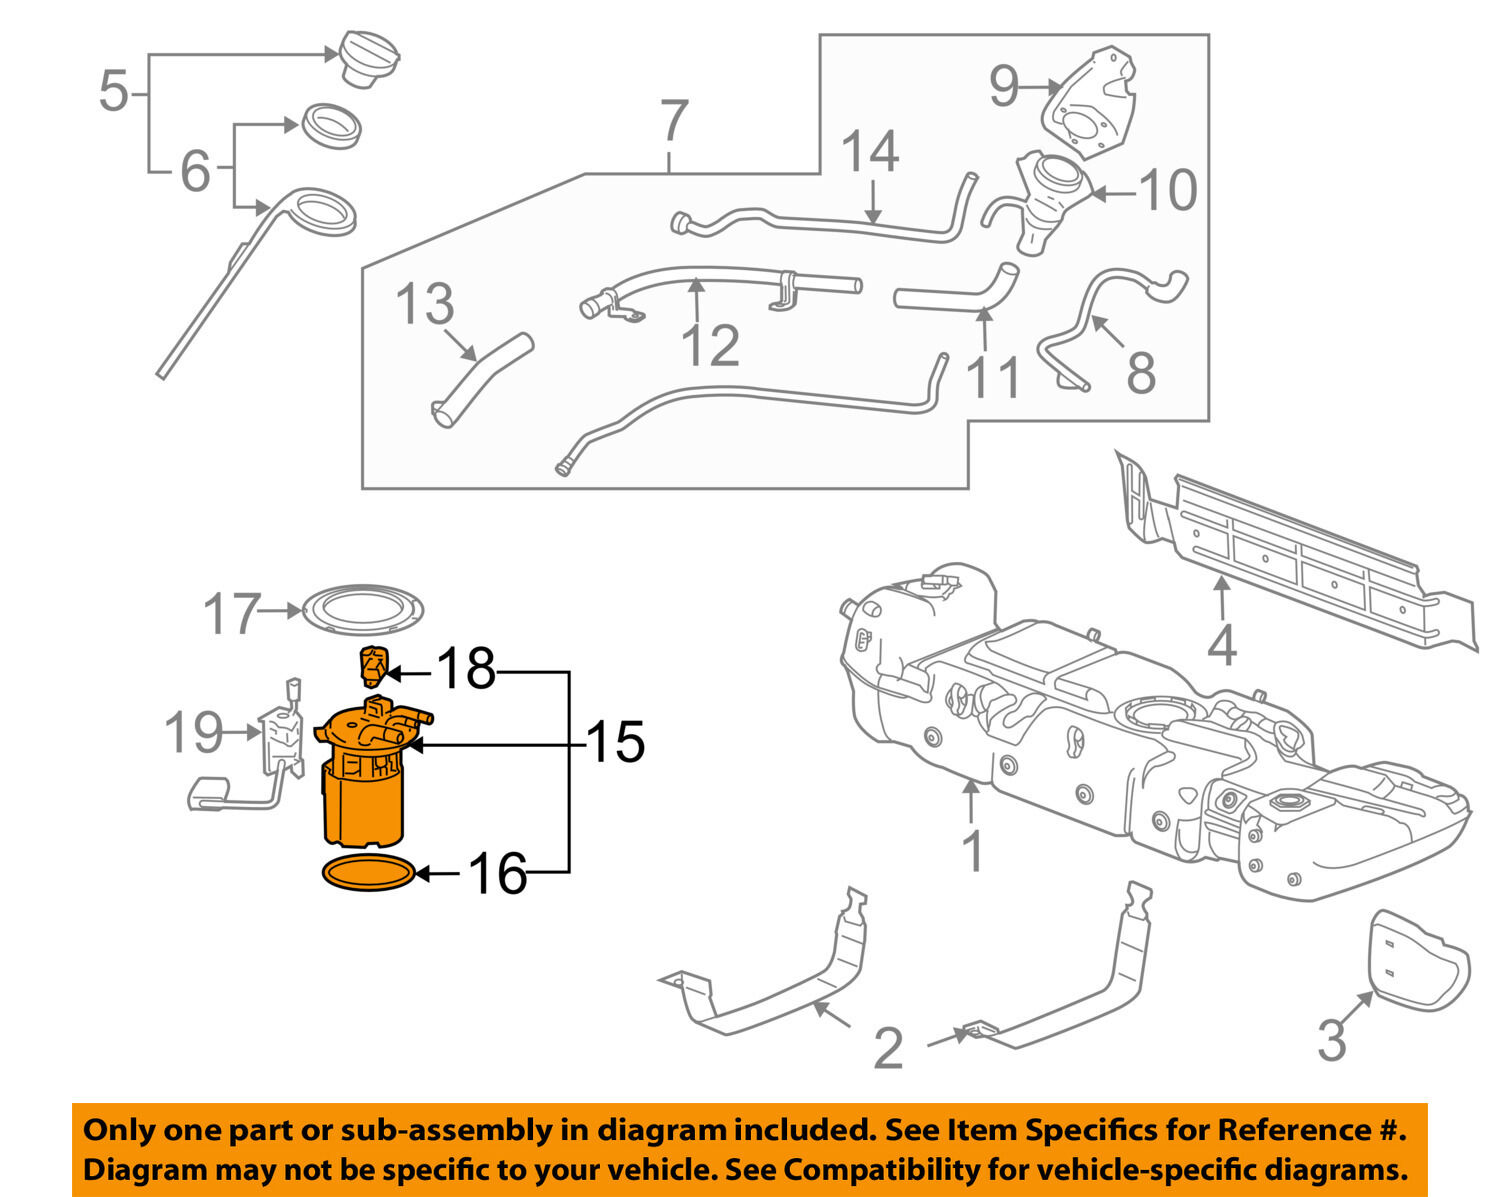 Gm Oem Fuel Pump 19299717 25211 Picclick Diagram 1 Of 2only Available